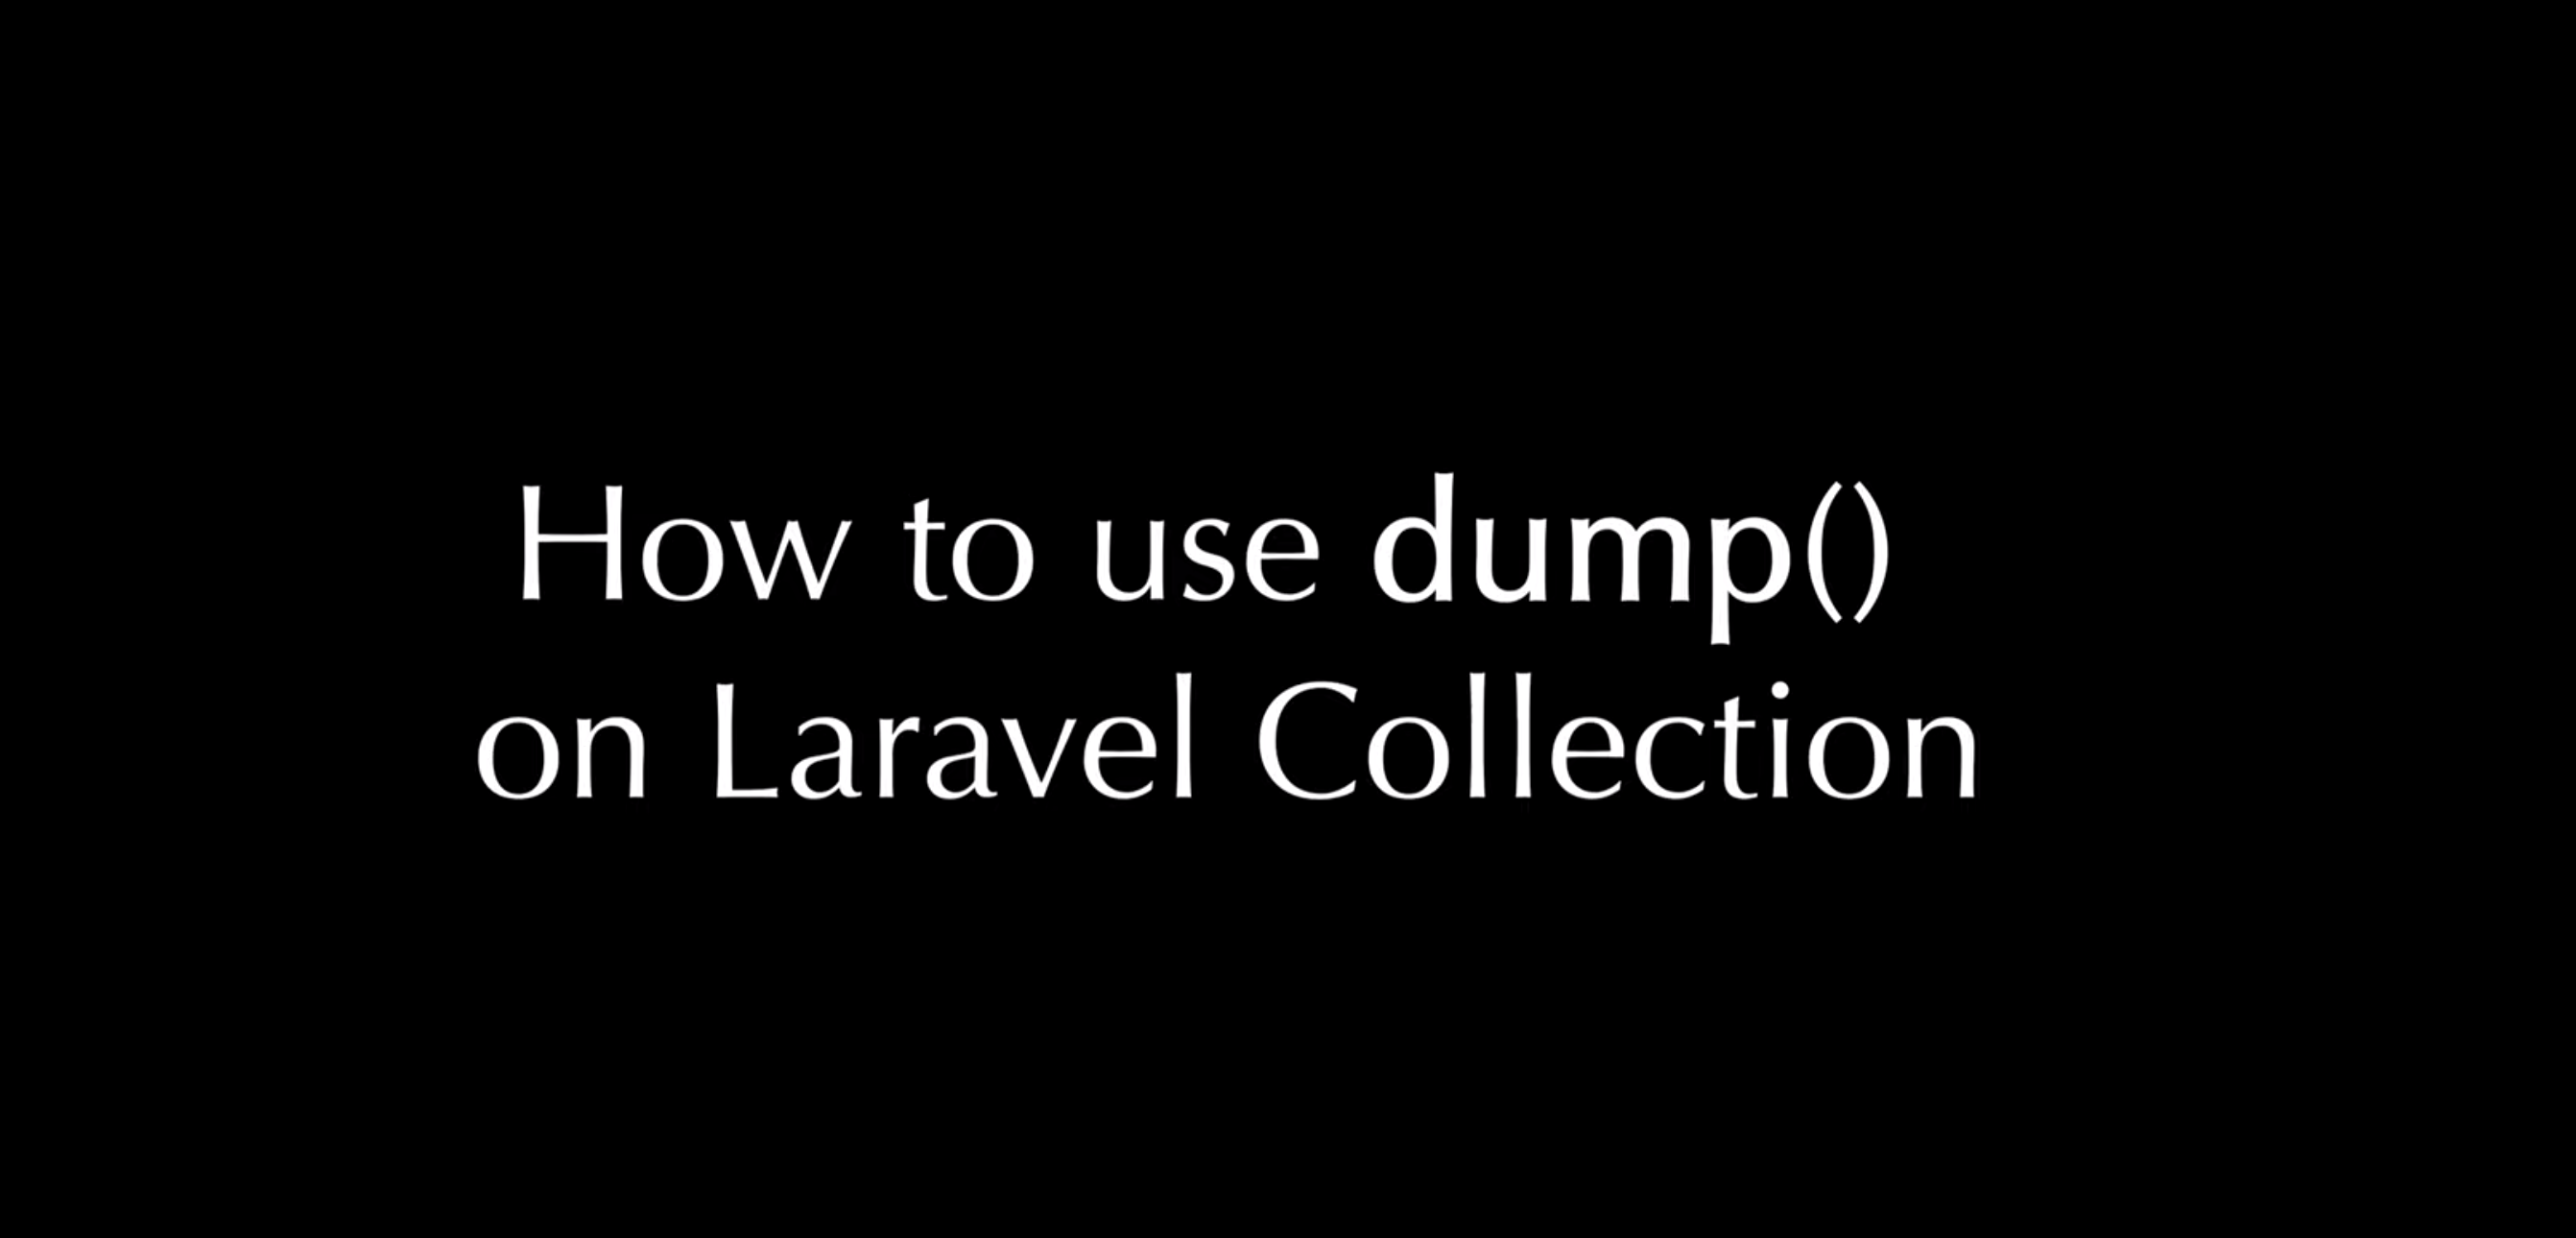 How to use dump() on Laravel Collection